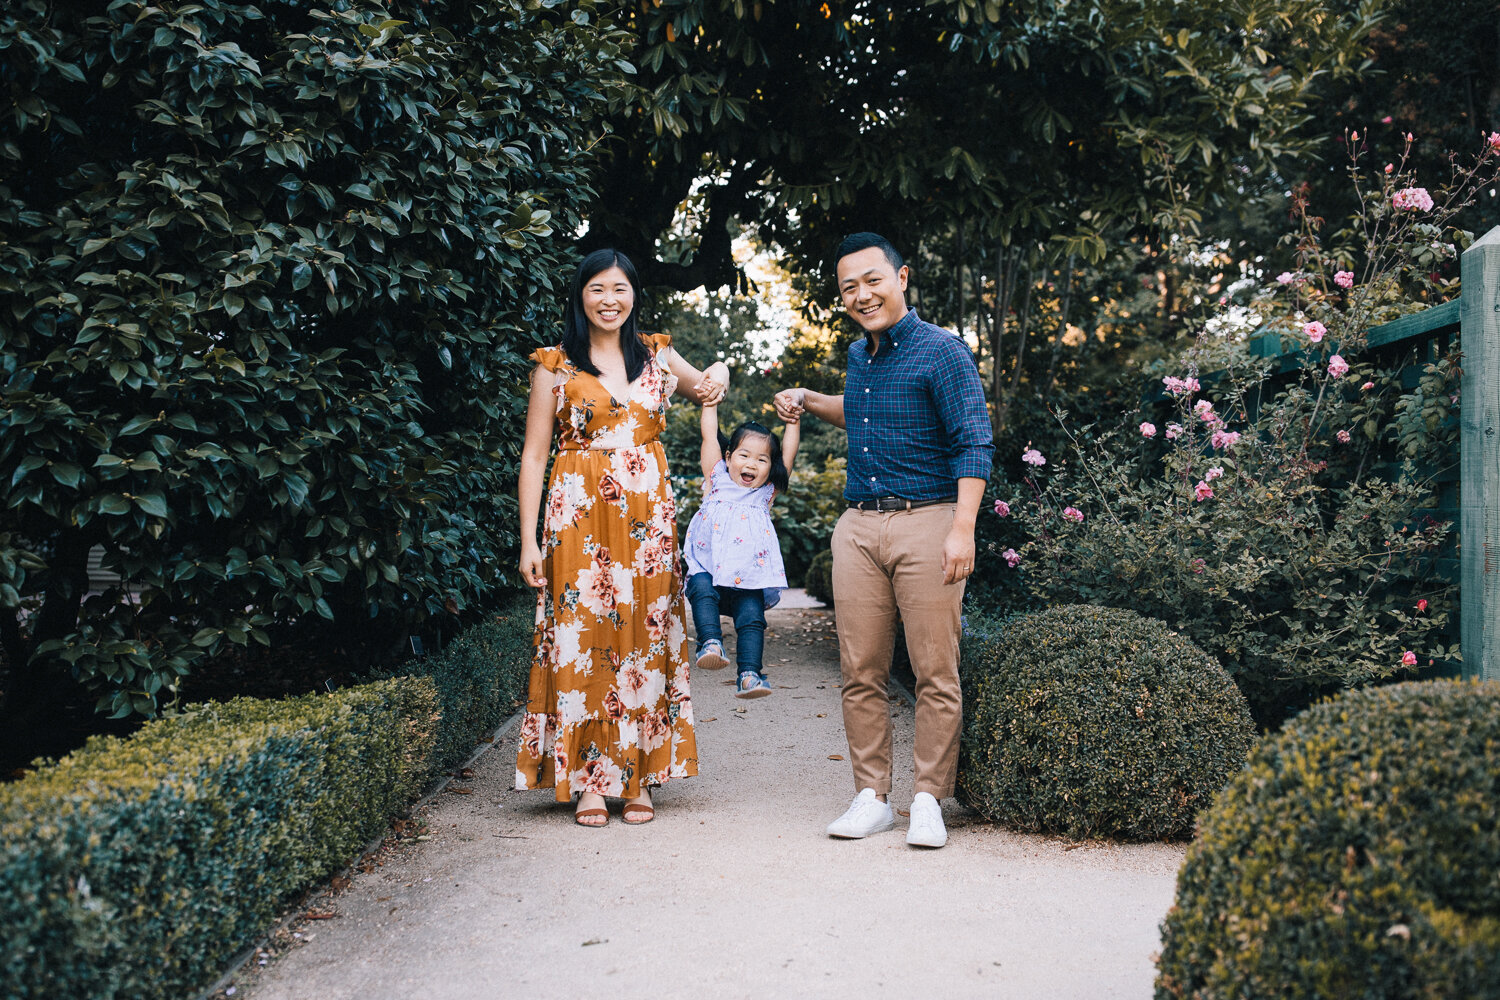 2019_09_ 082019.09.12 Kat Leung Family Session Edited For Web 0023.jpg